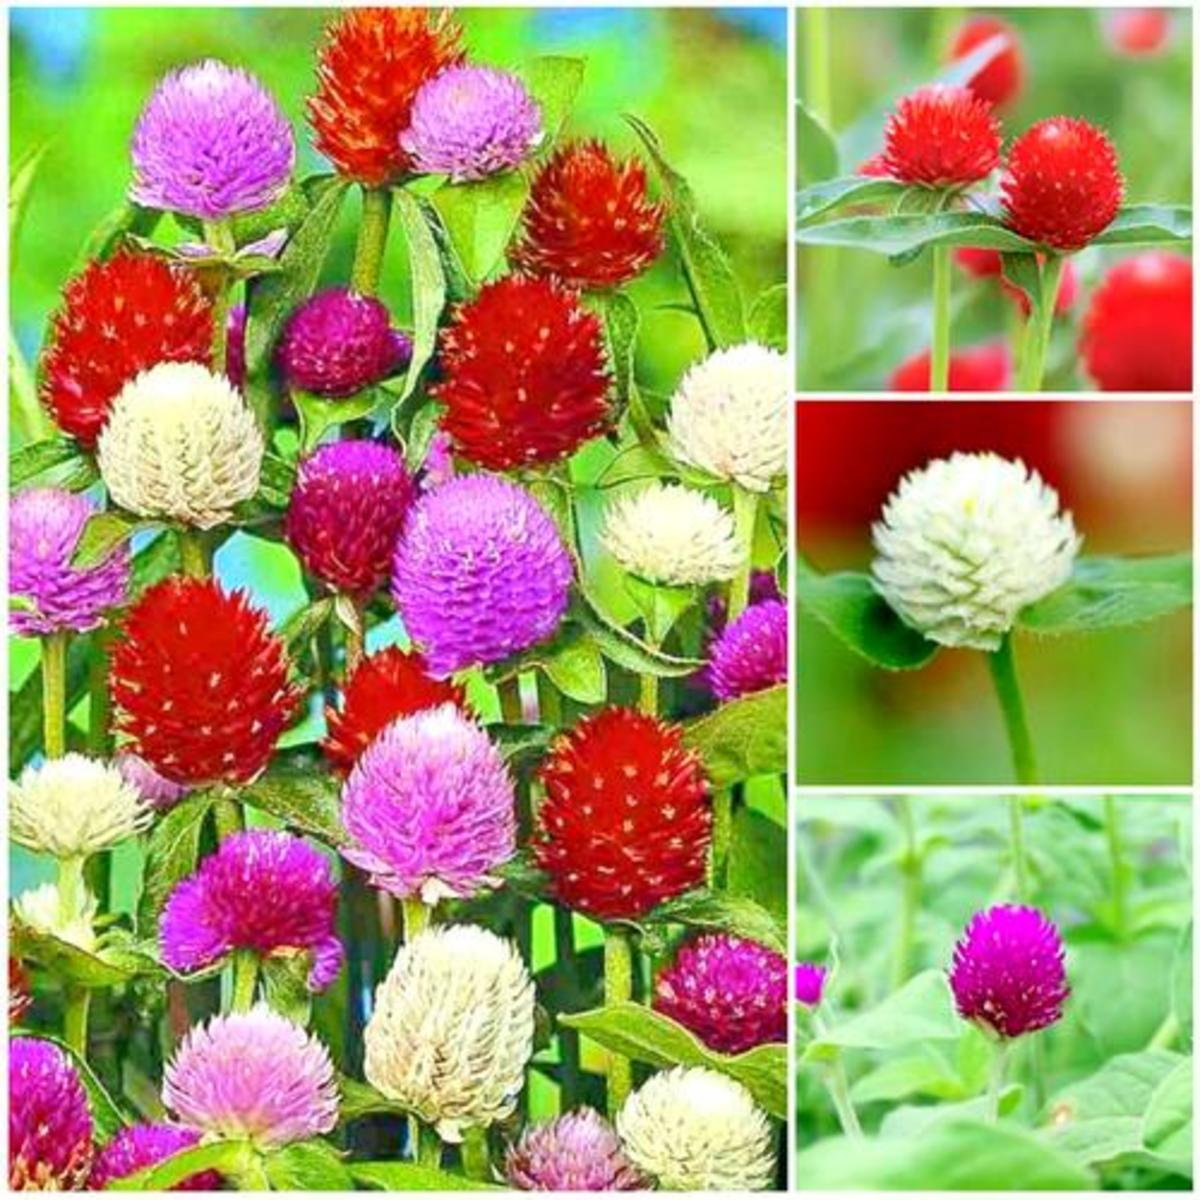 This looks like plastic flower. This is available in multi colors and the flower lasts for 2 months.